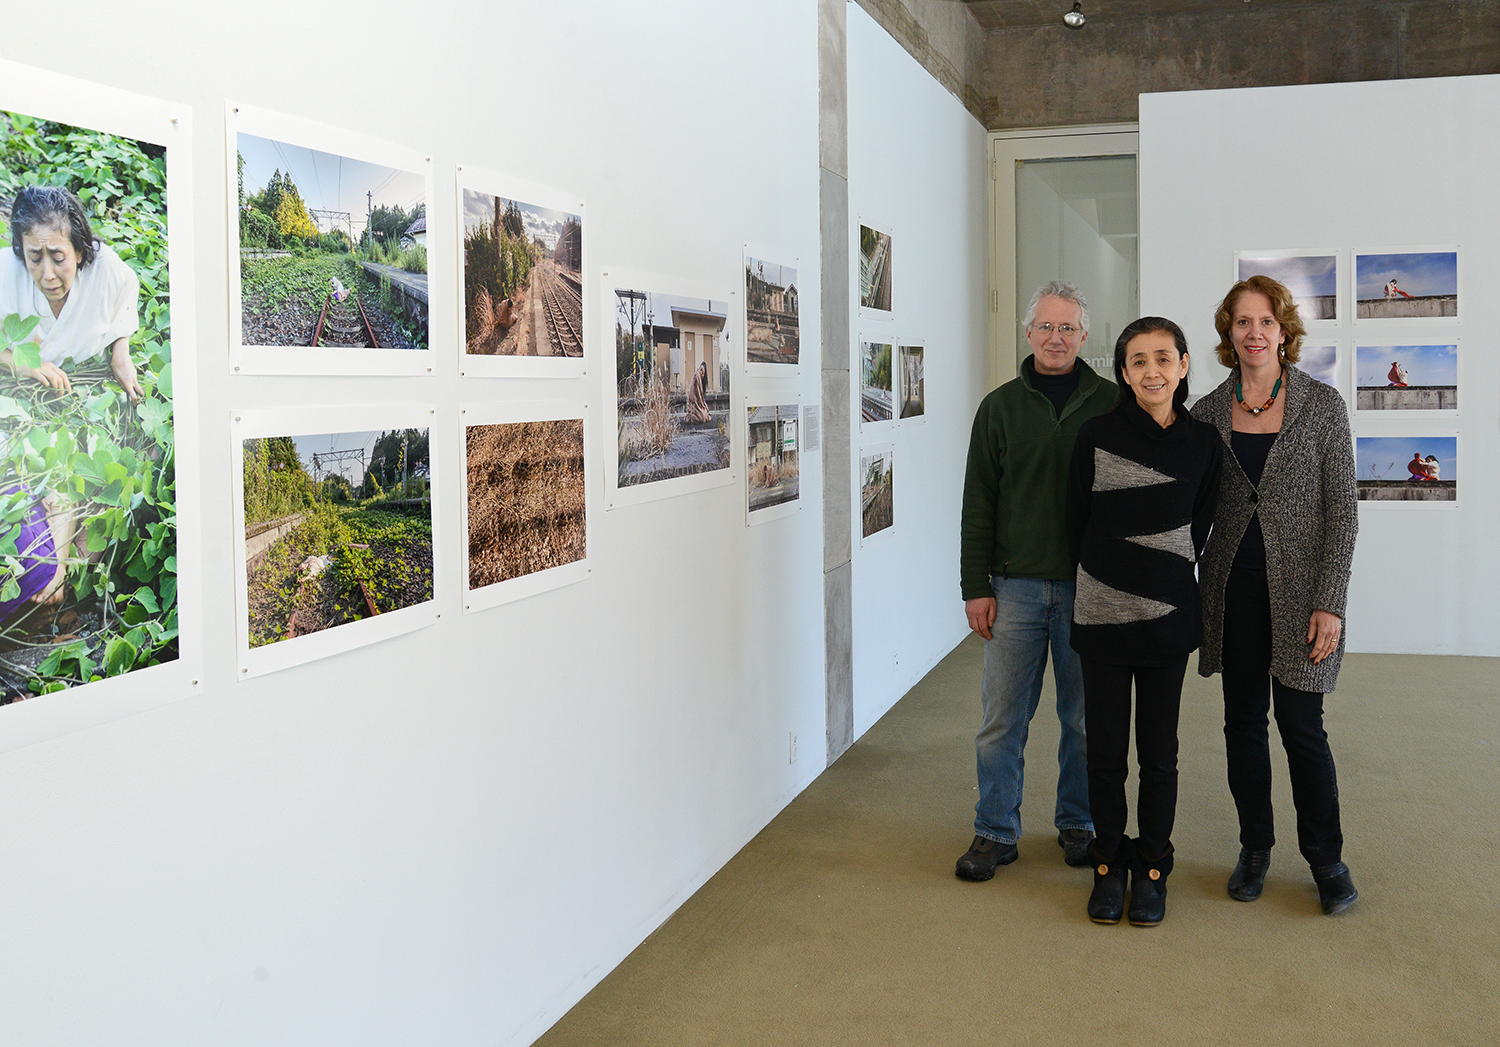 Pictured at the exhibit are Bill Johnston, Eiko Otake and Pam Tatge, director of the Center for the Arts,